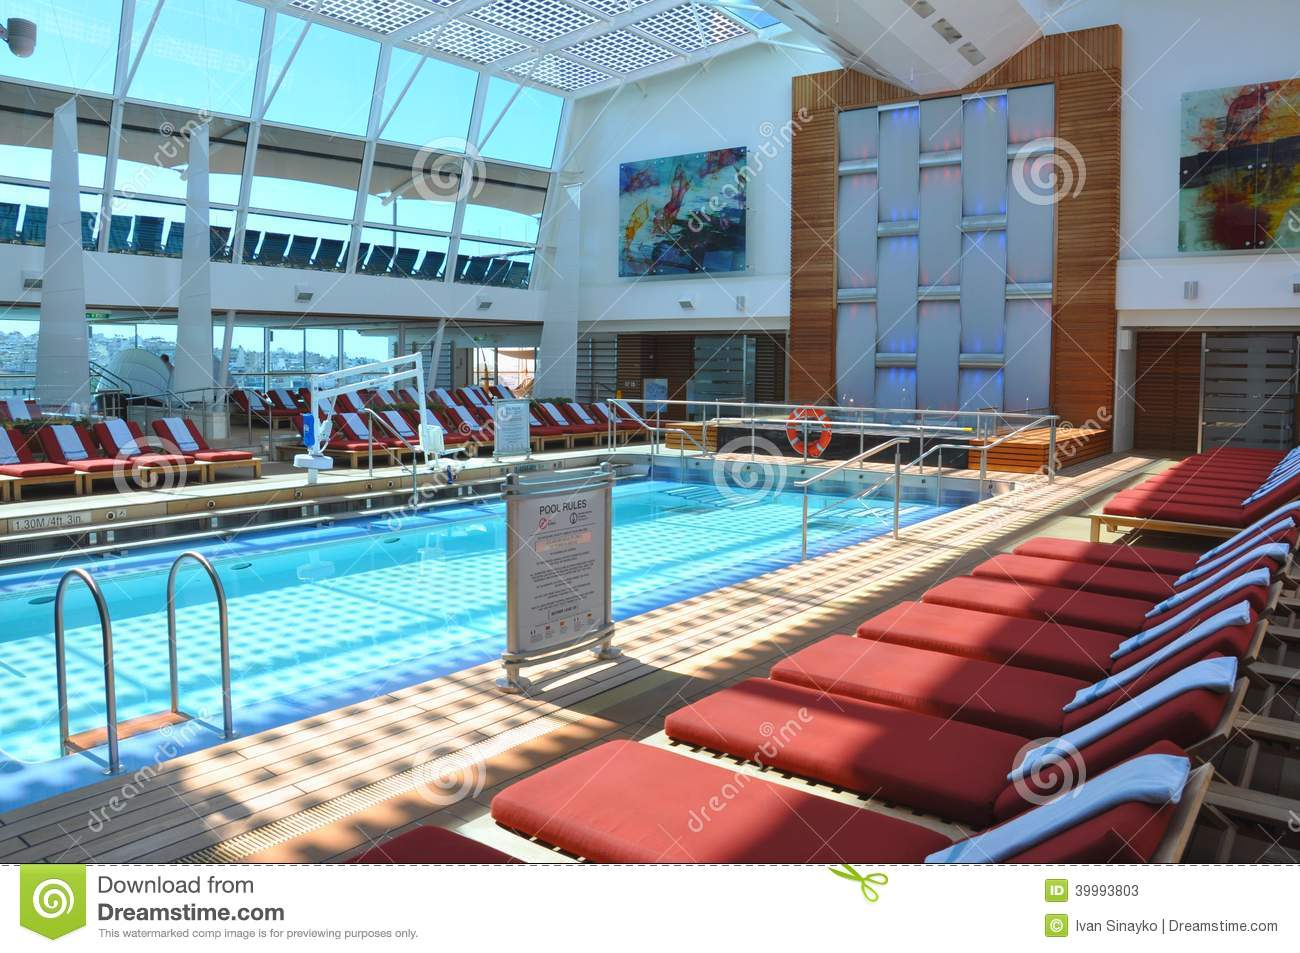 ... pool onboard cruise ship Celebrity Reflection, Celebrity Cruise Line